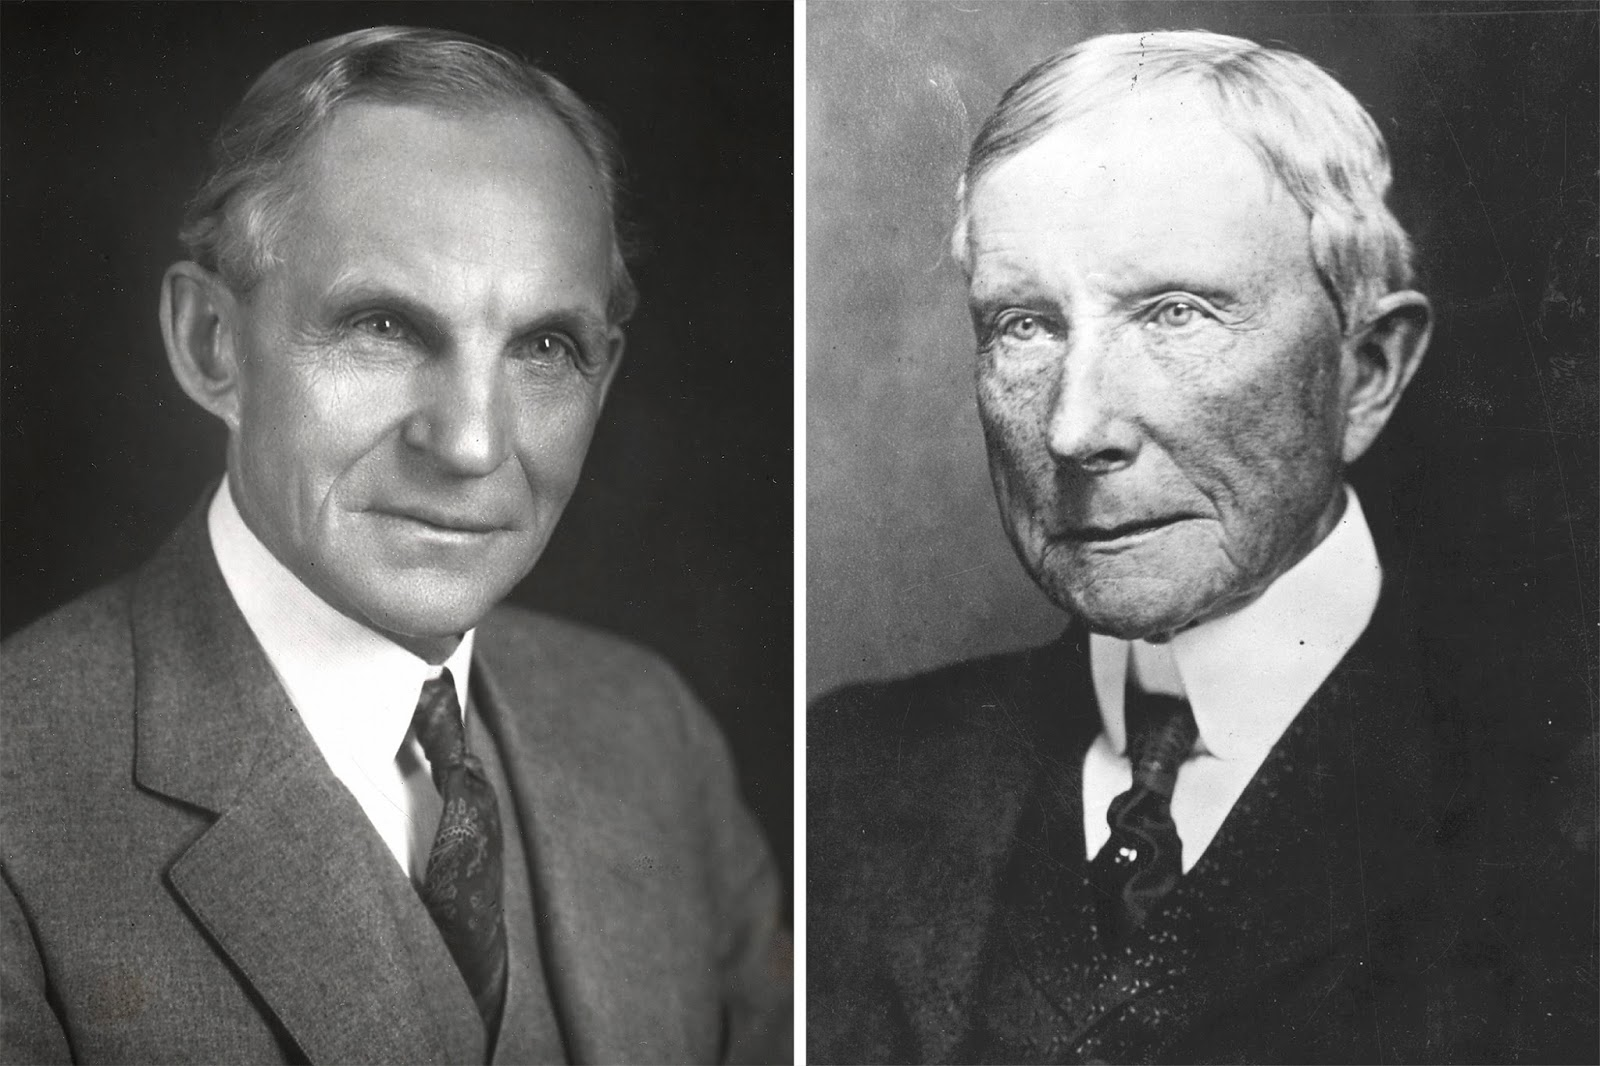 an analysis of john d rockefeller an oil baron investor and philanthropist John d rockefeller, born on july 8, 1839, has had a huge impact on the course of american history, his reputation spans from being a ruthless businessperson to a thoughtful philanthropist (tarbell 41.